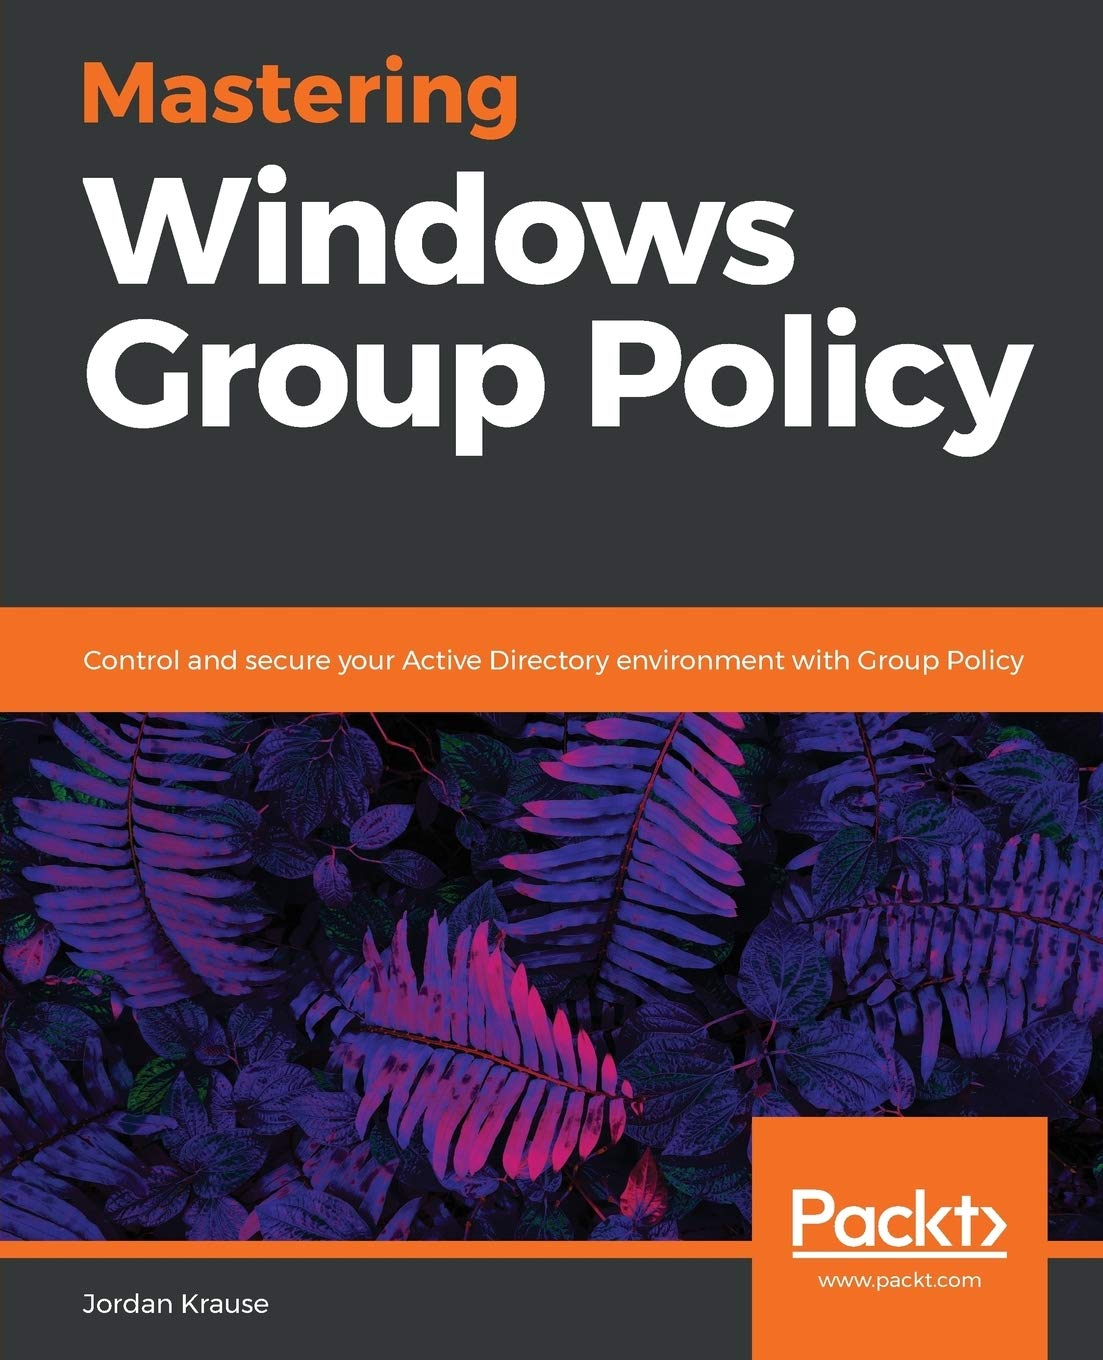 Image OfMastering Windows Group Policy: Control And Secure Your Active Directory Environment With Group Policy